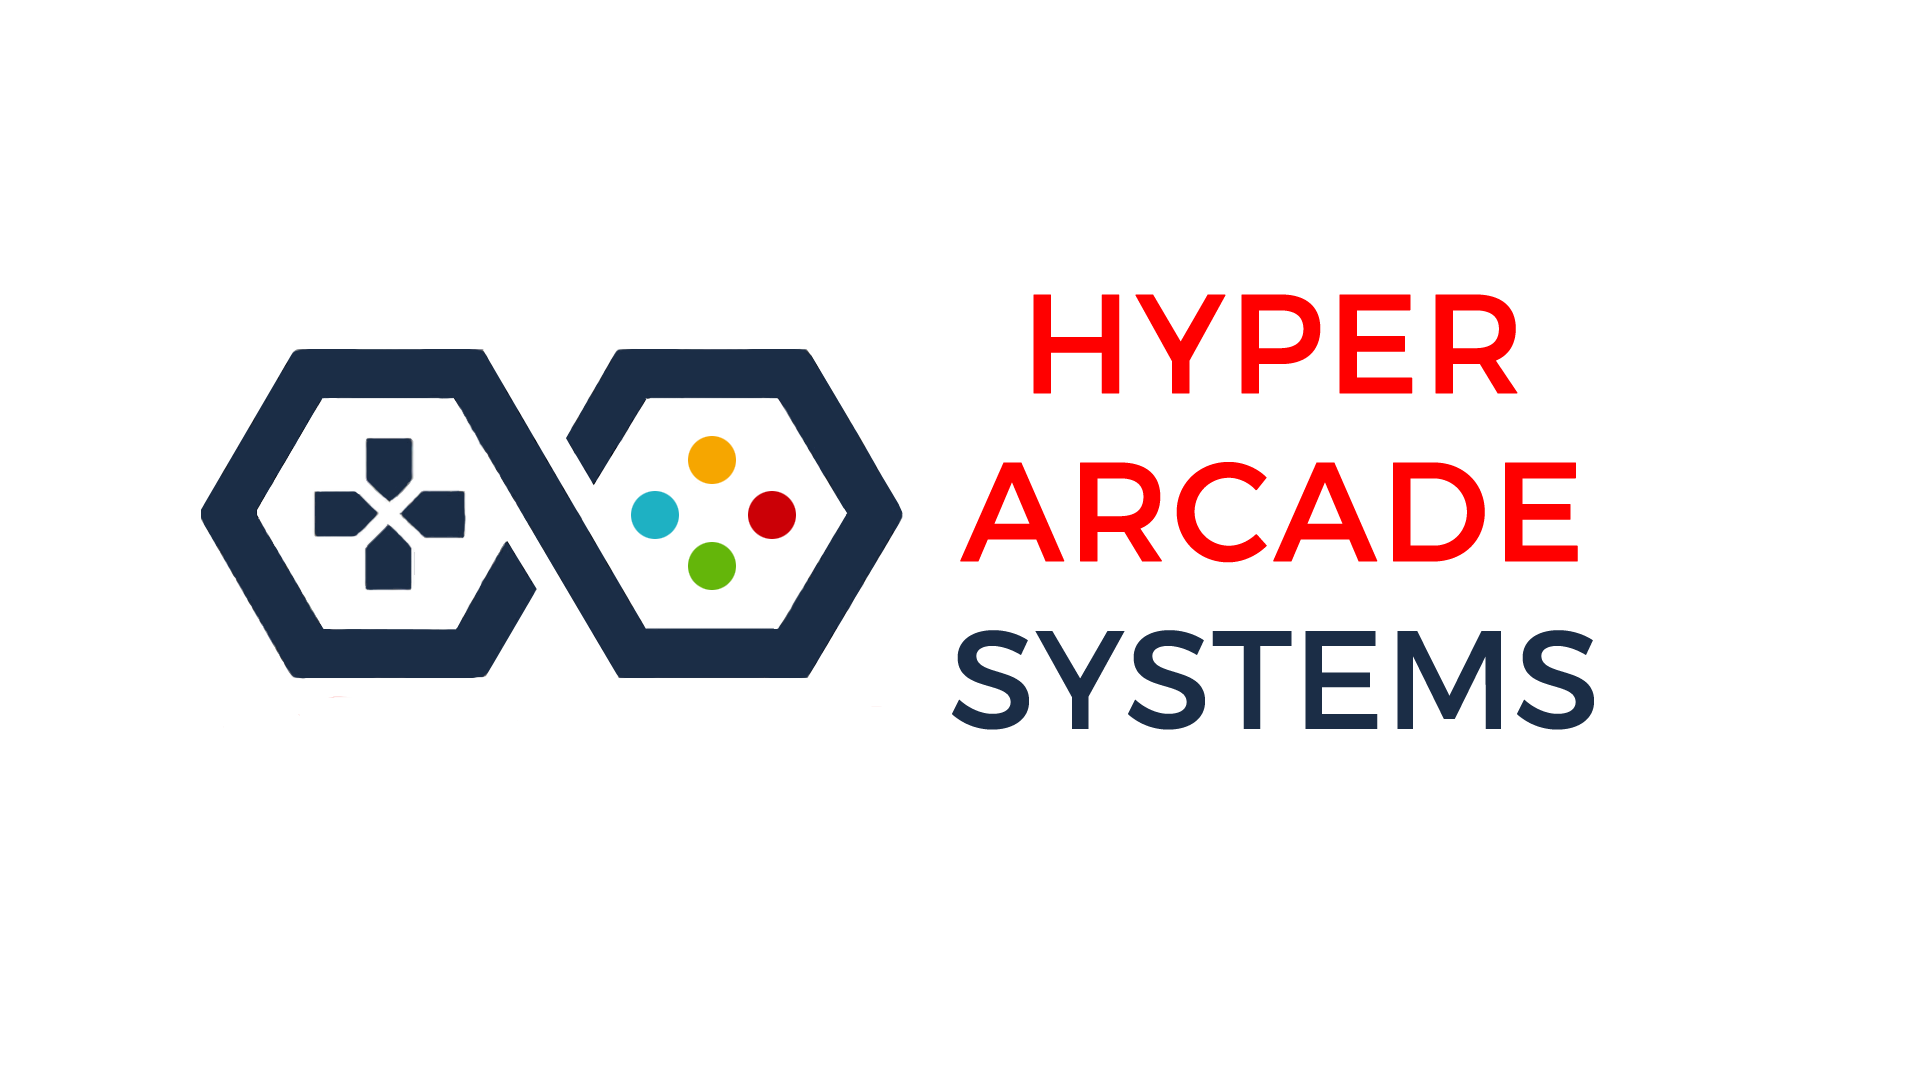 Frontend Log Updates | Hyper Arcade Systems - Hyperspin Setups made easy